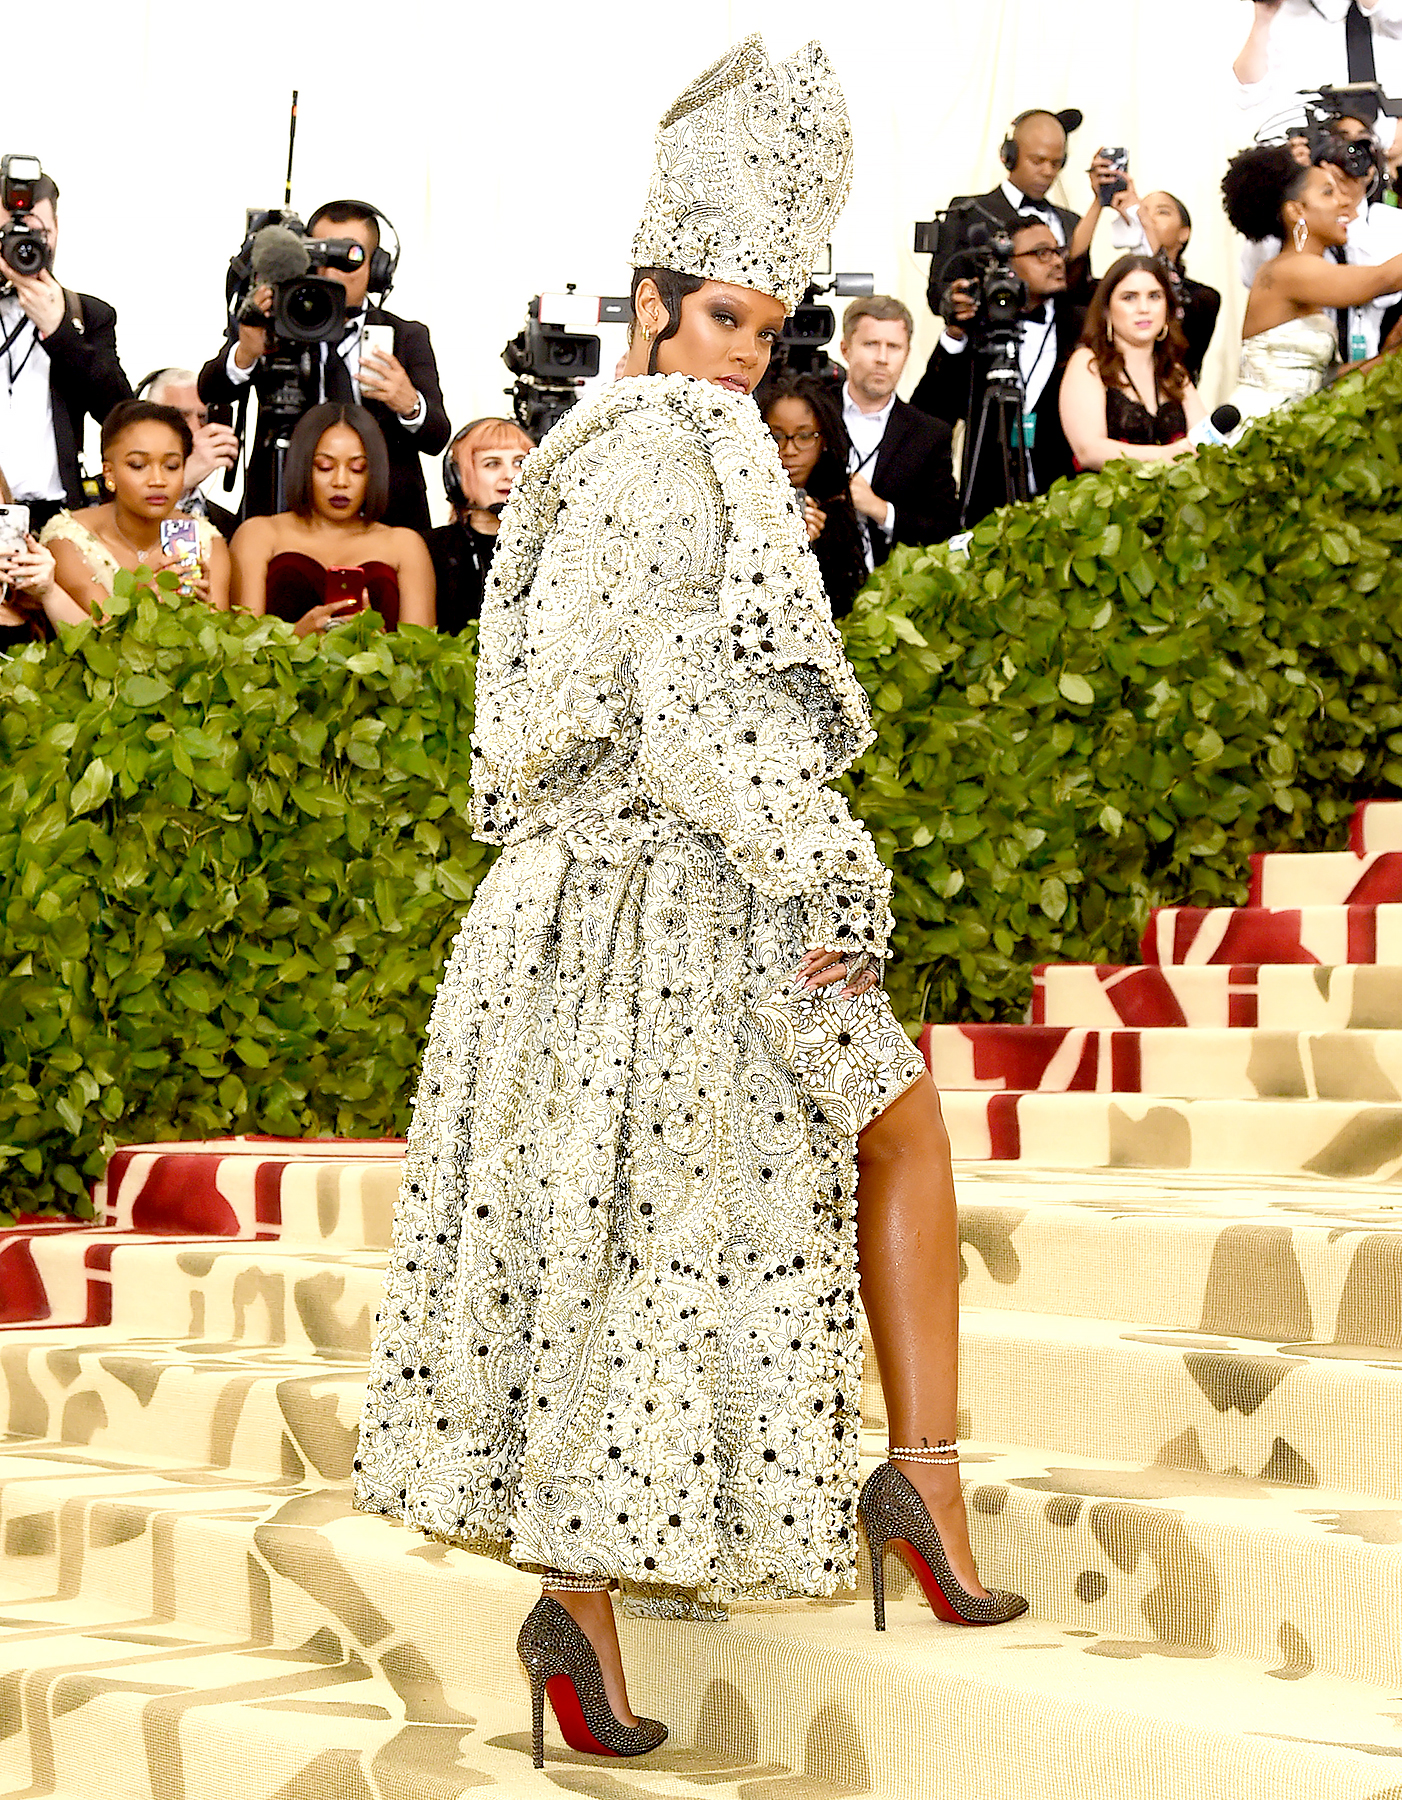 rihanna-met-gala-2018-2 - Rihanna attends the Heavenly Bodies: Fashion & The Catholic Imagination Costume Institute Gala at The Metropolitan Museum of Art on May 7, 2018 in New York City.